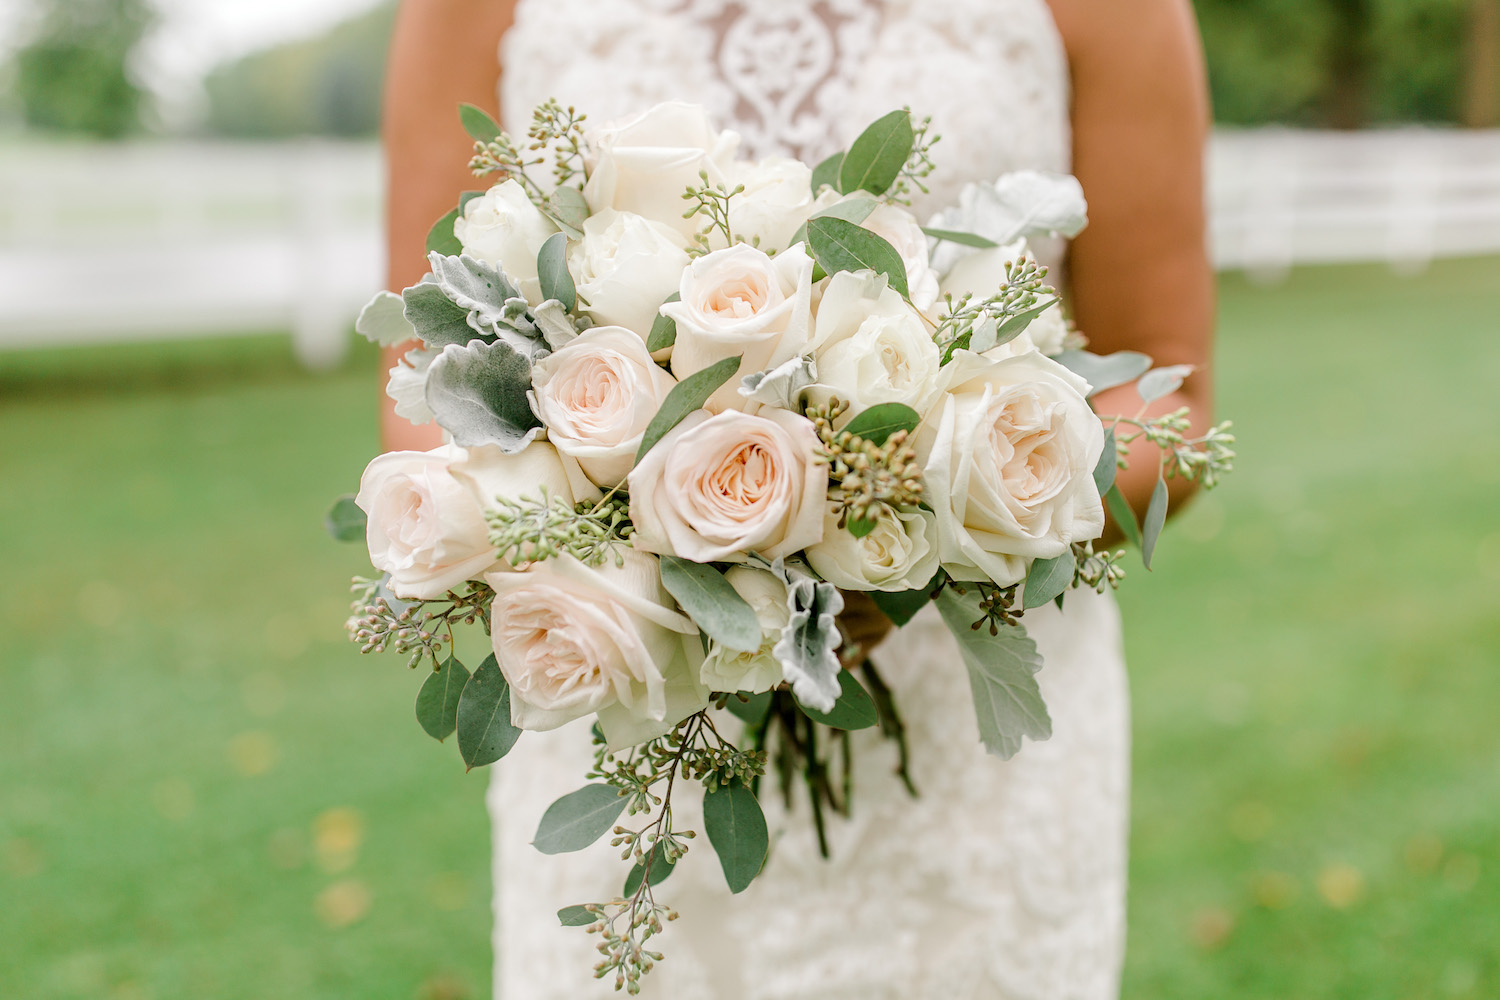 Brides bouquet for her Wallinwood Springs Golf Course wedding